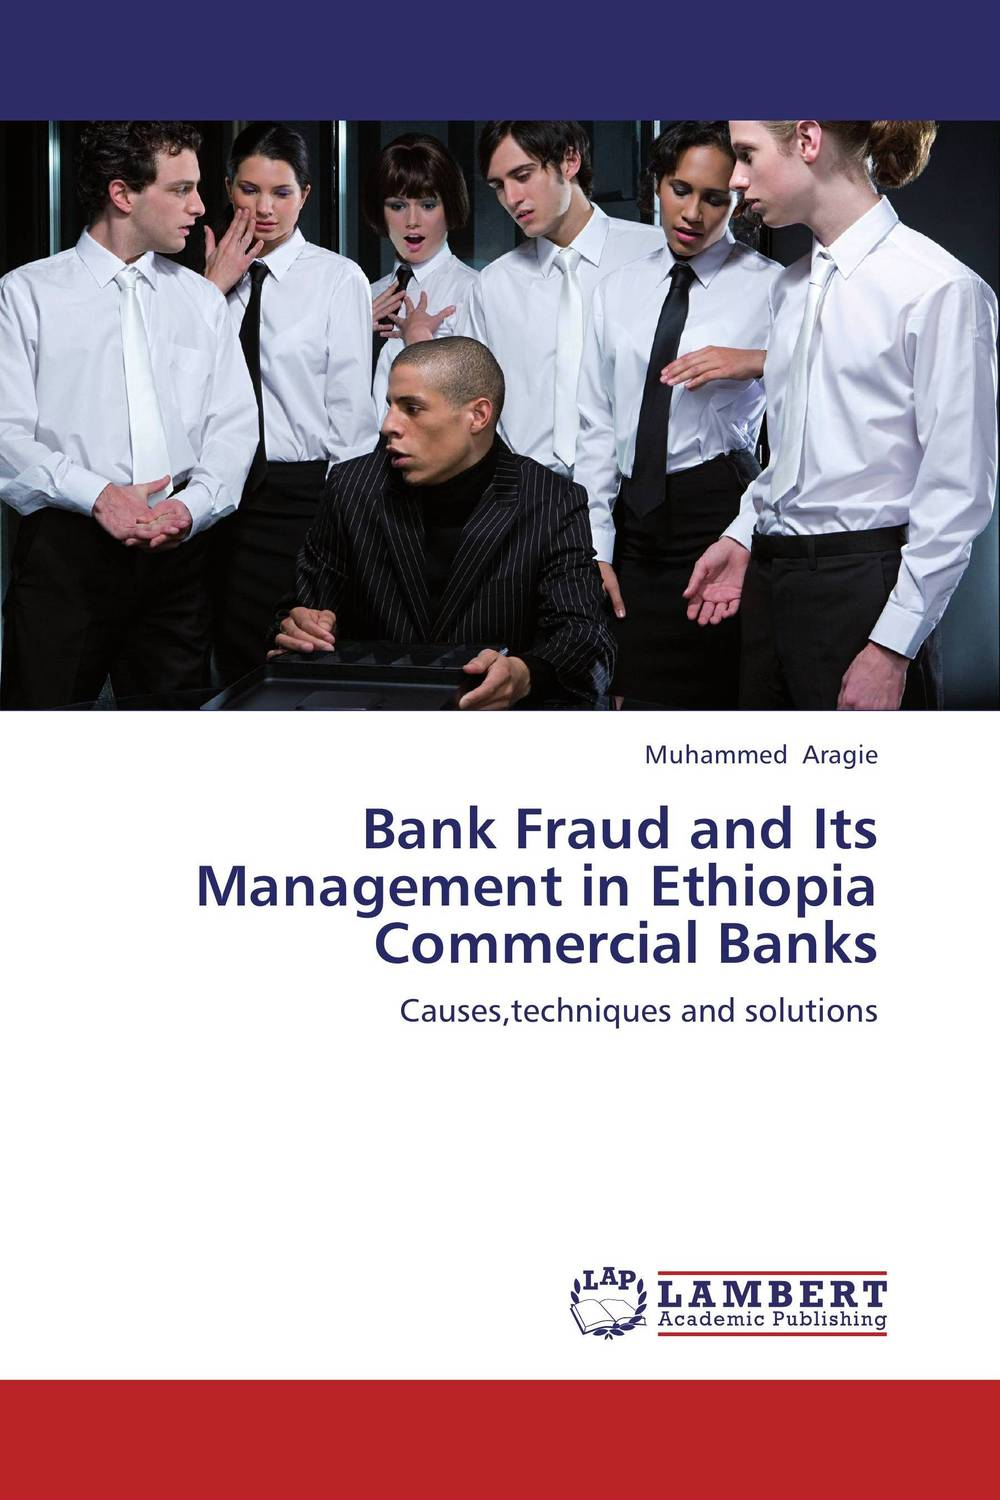 Bank Fraud and Its Management in Ethiopia Commercial Banks howard r davia management accountant s guide to fraud discovery and control